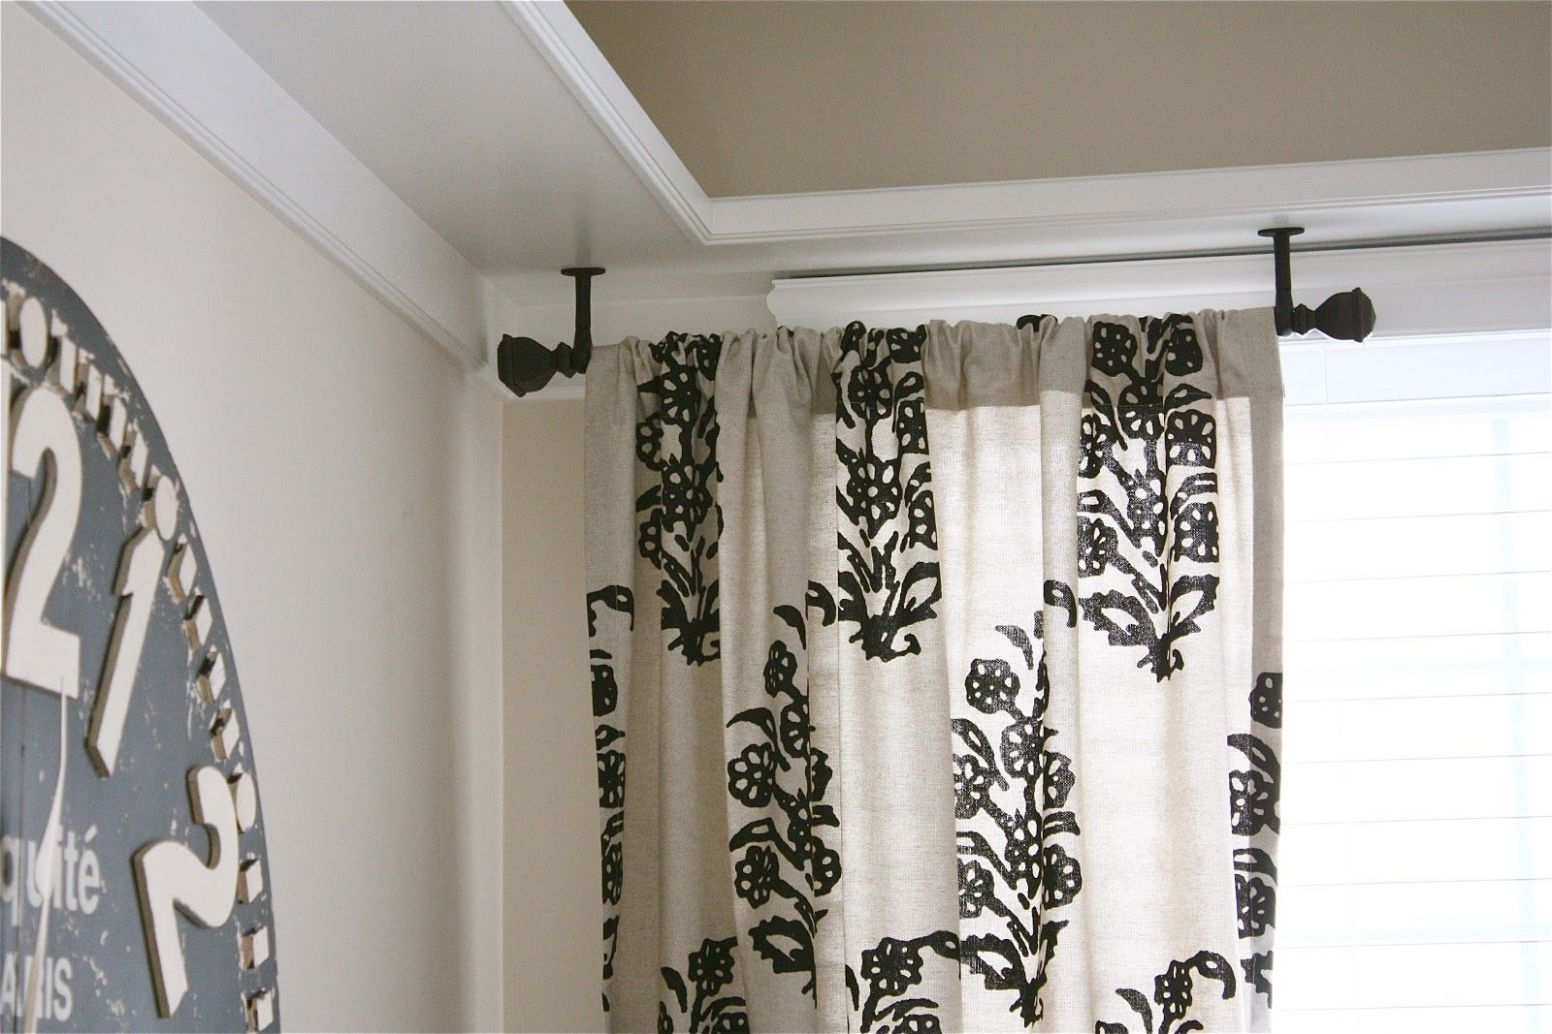 Ceiling Mount Drapery Trick (With images) | Ceiling mount curtain ..